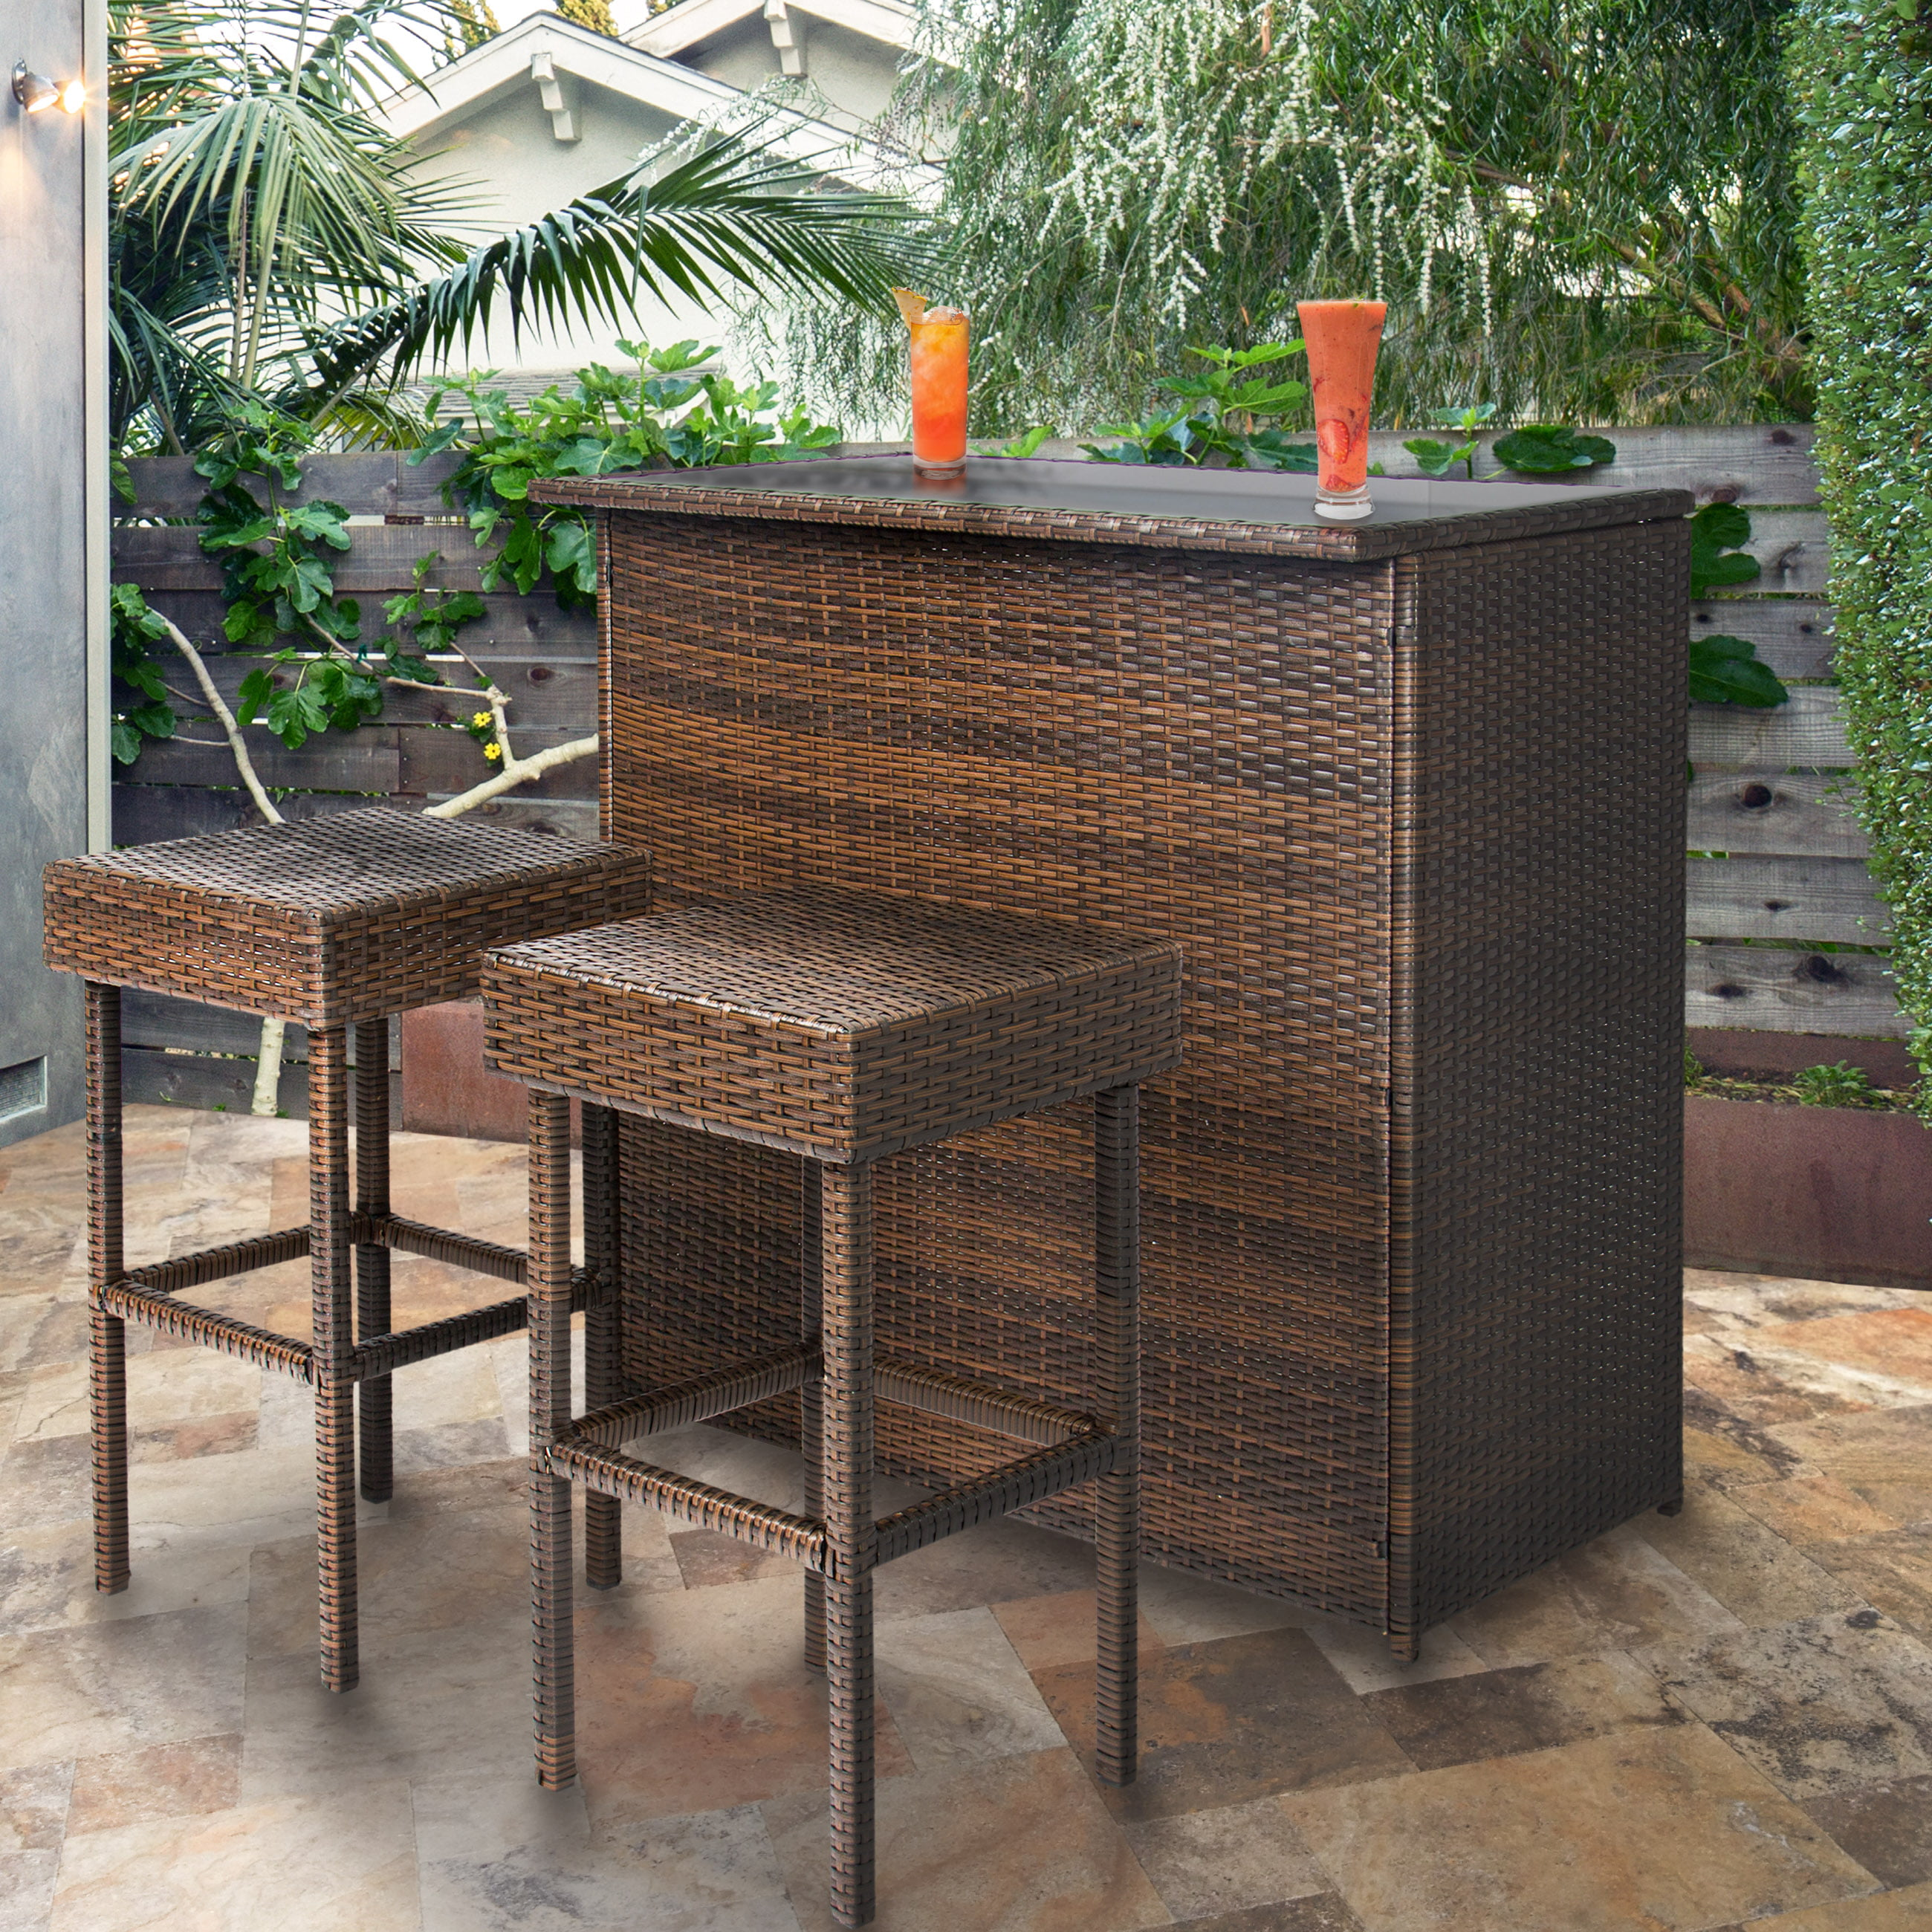 Click here to buy Best Choice Products 3PC Wicker Bar Set Patio Outdoor Backyard Table & 2 Stools Rattan Garden Furniture by Best Choice Products.